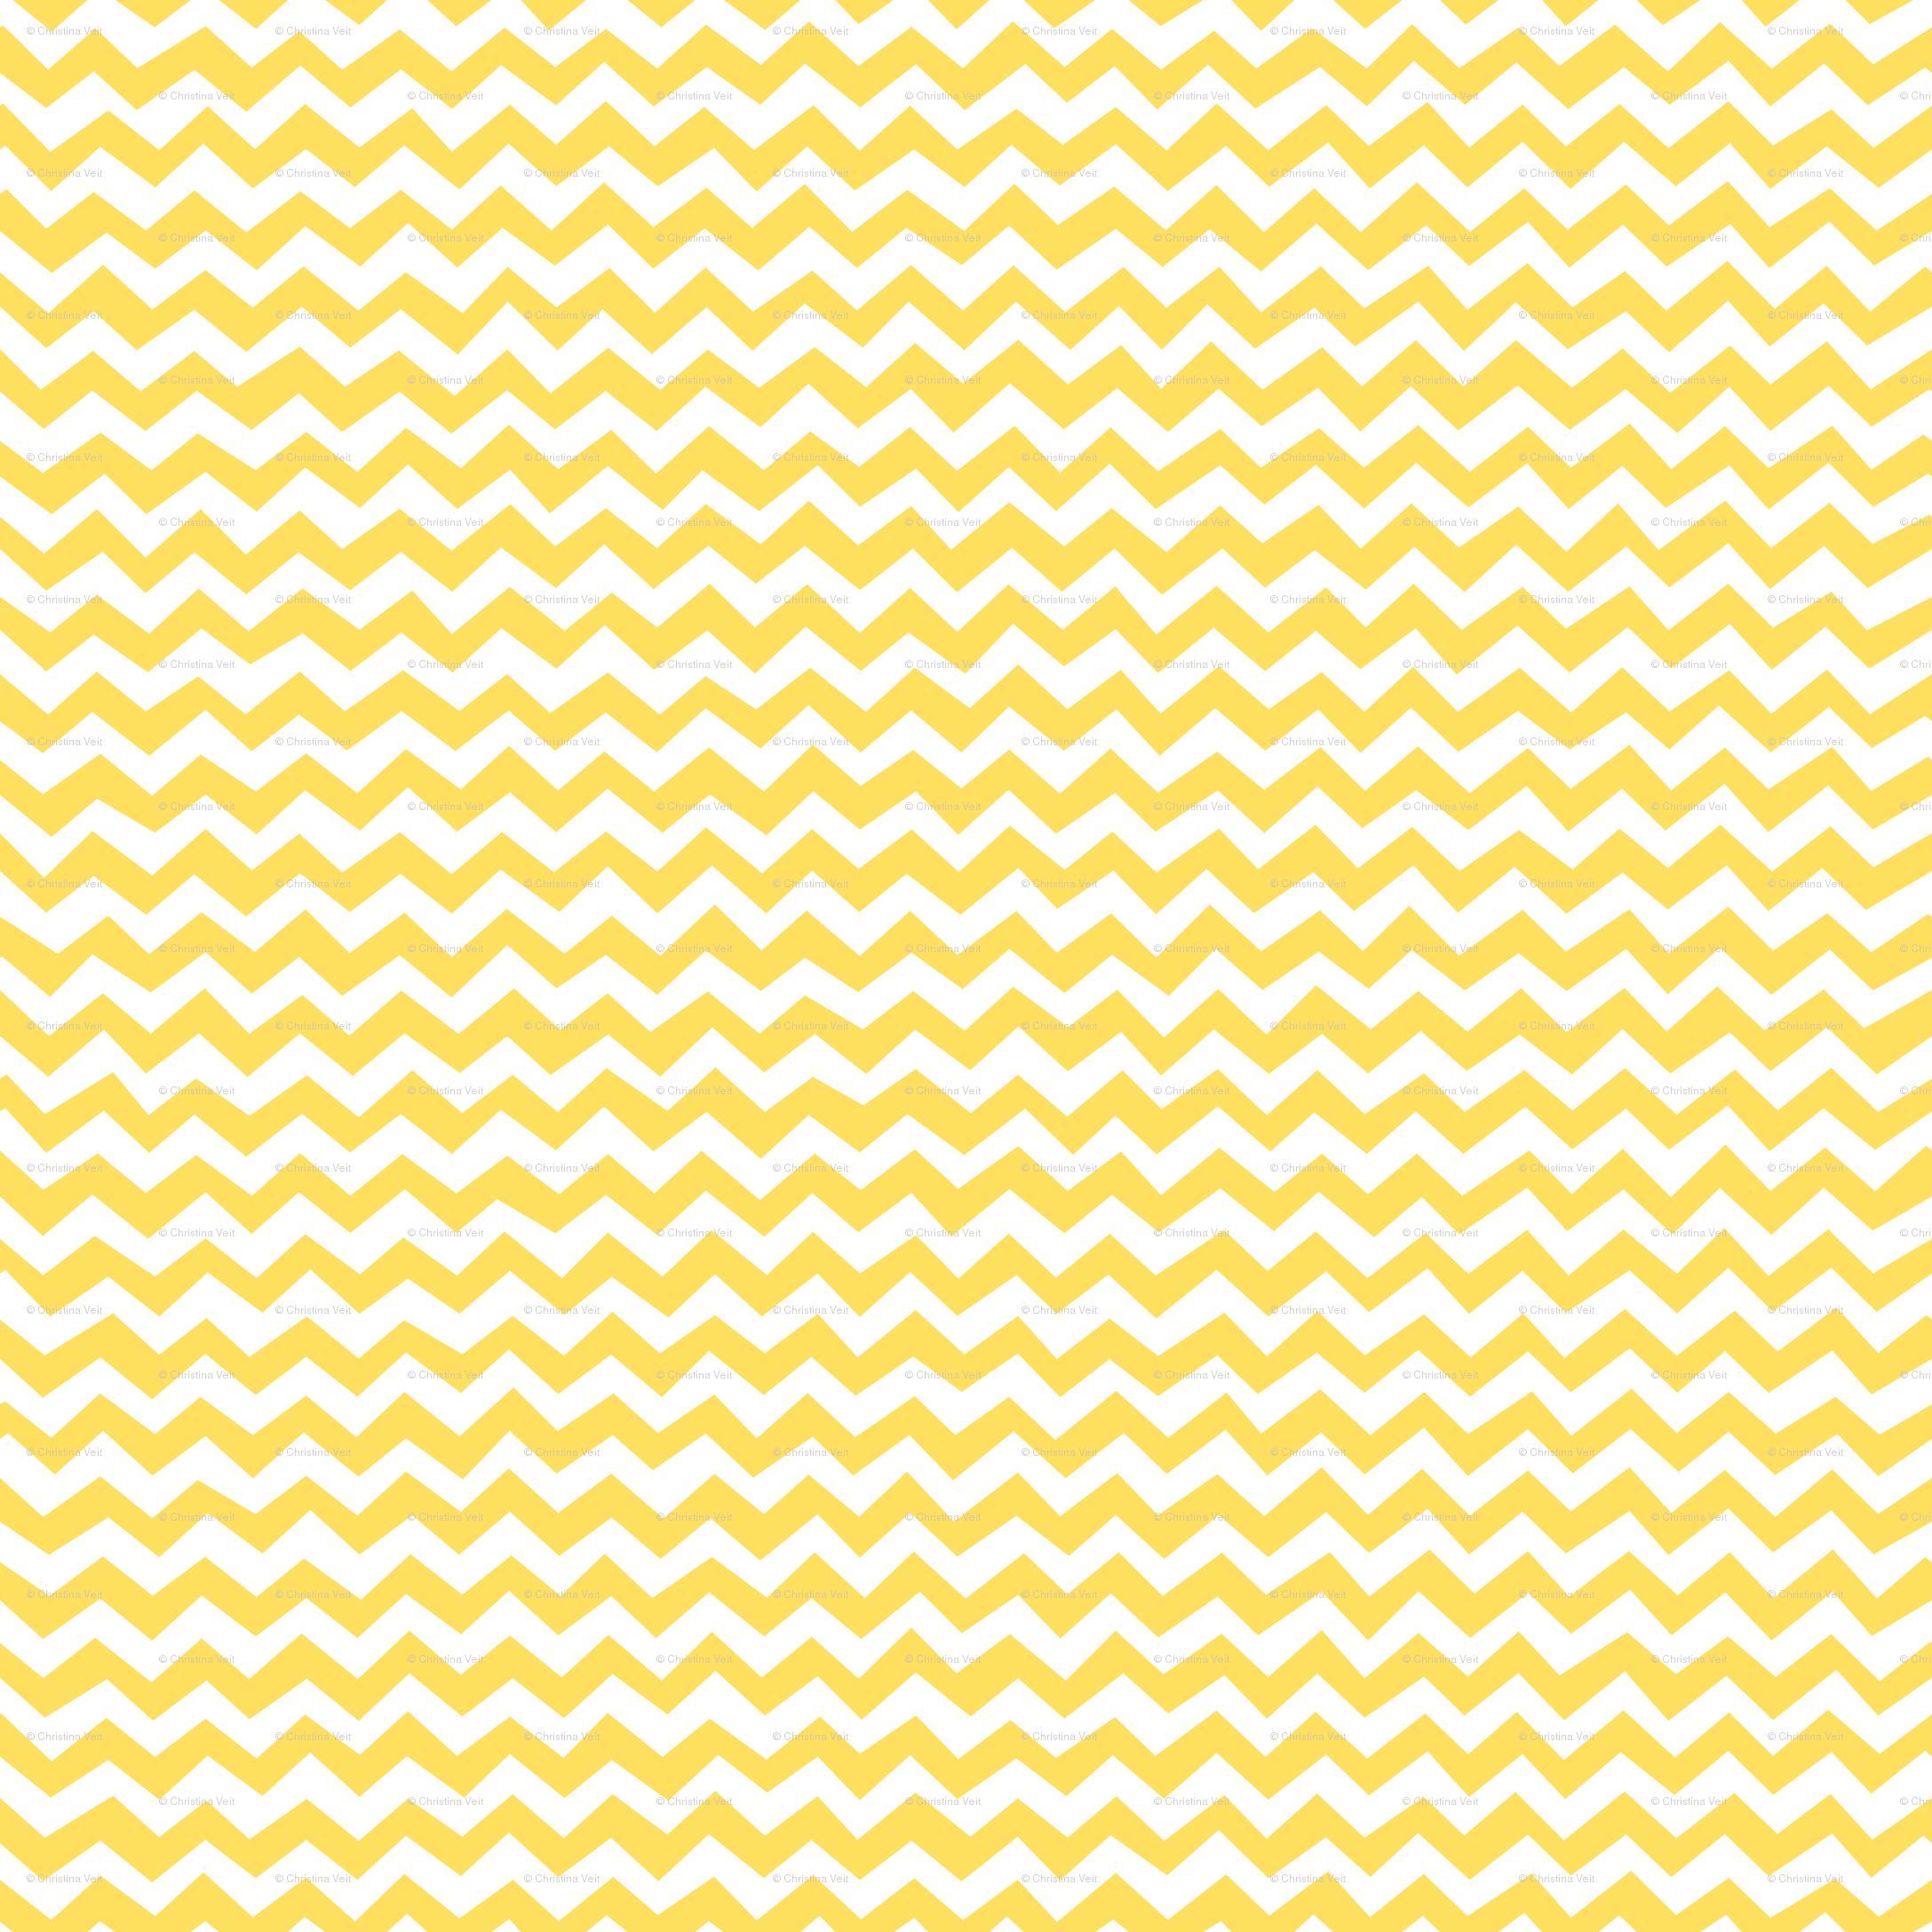 images of chevron print and its sc